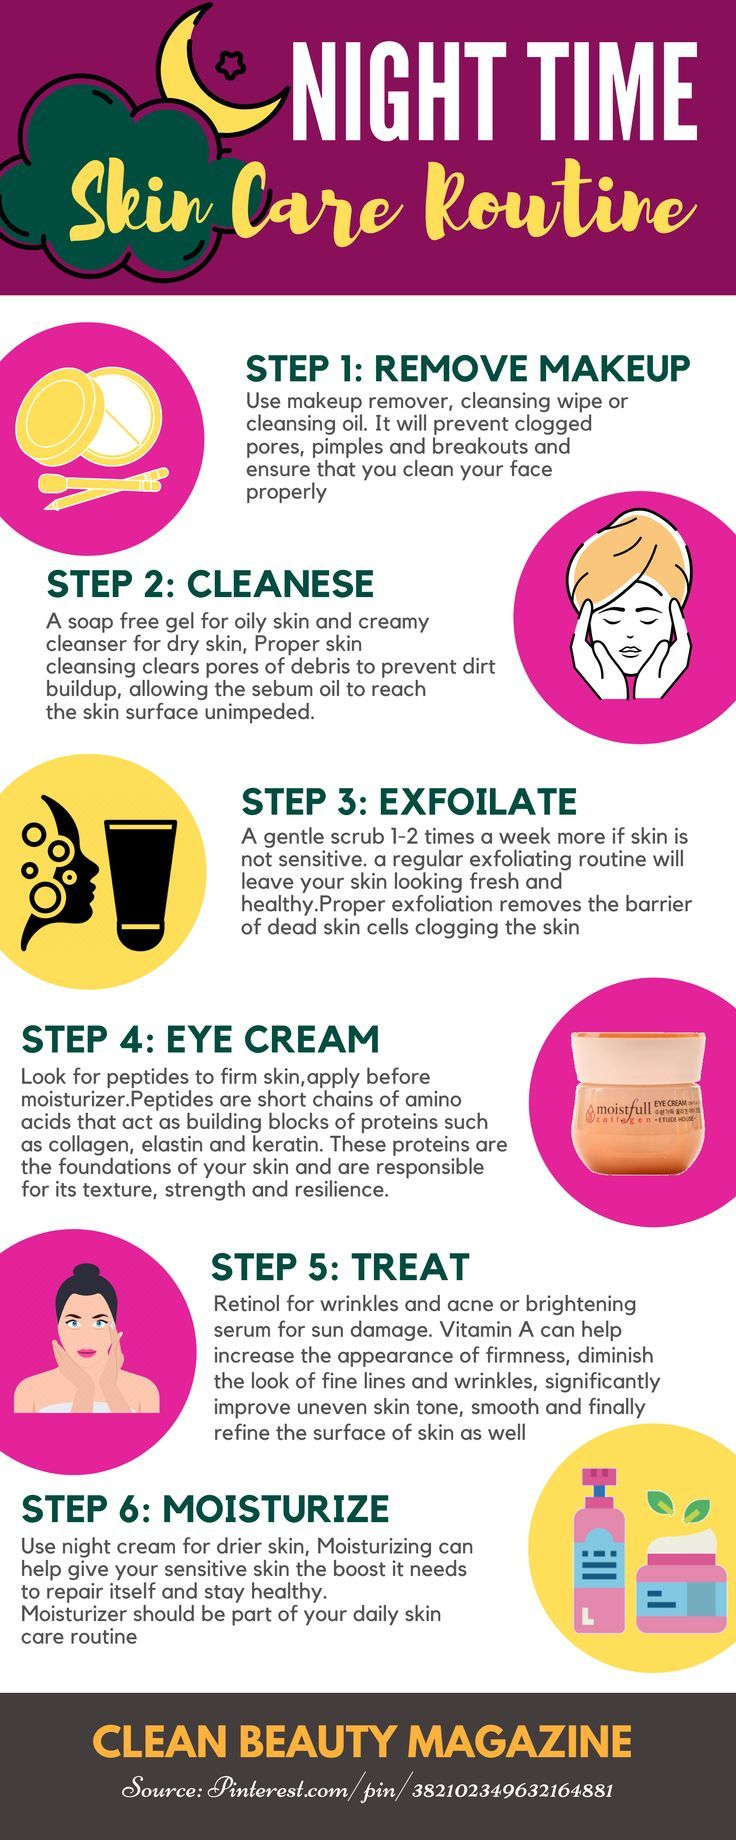 Guide To Adopt Natural Skincare Routine With Images Skin Care